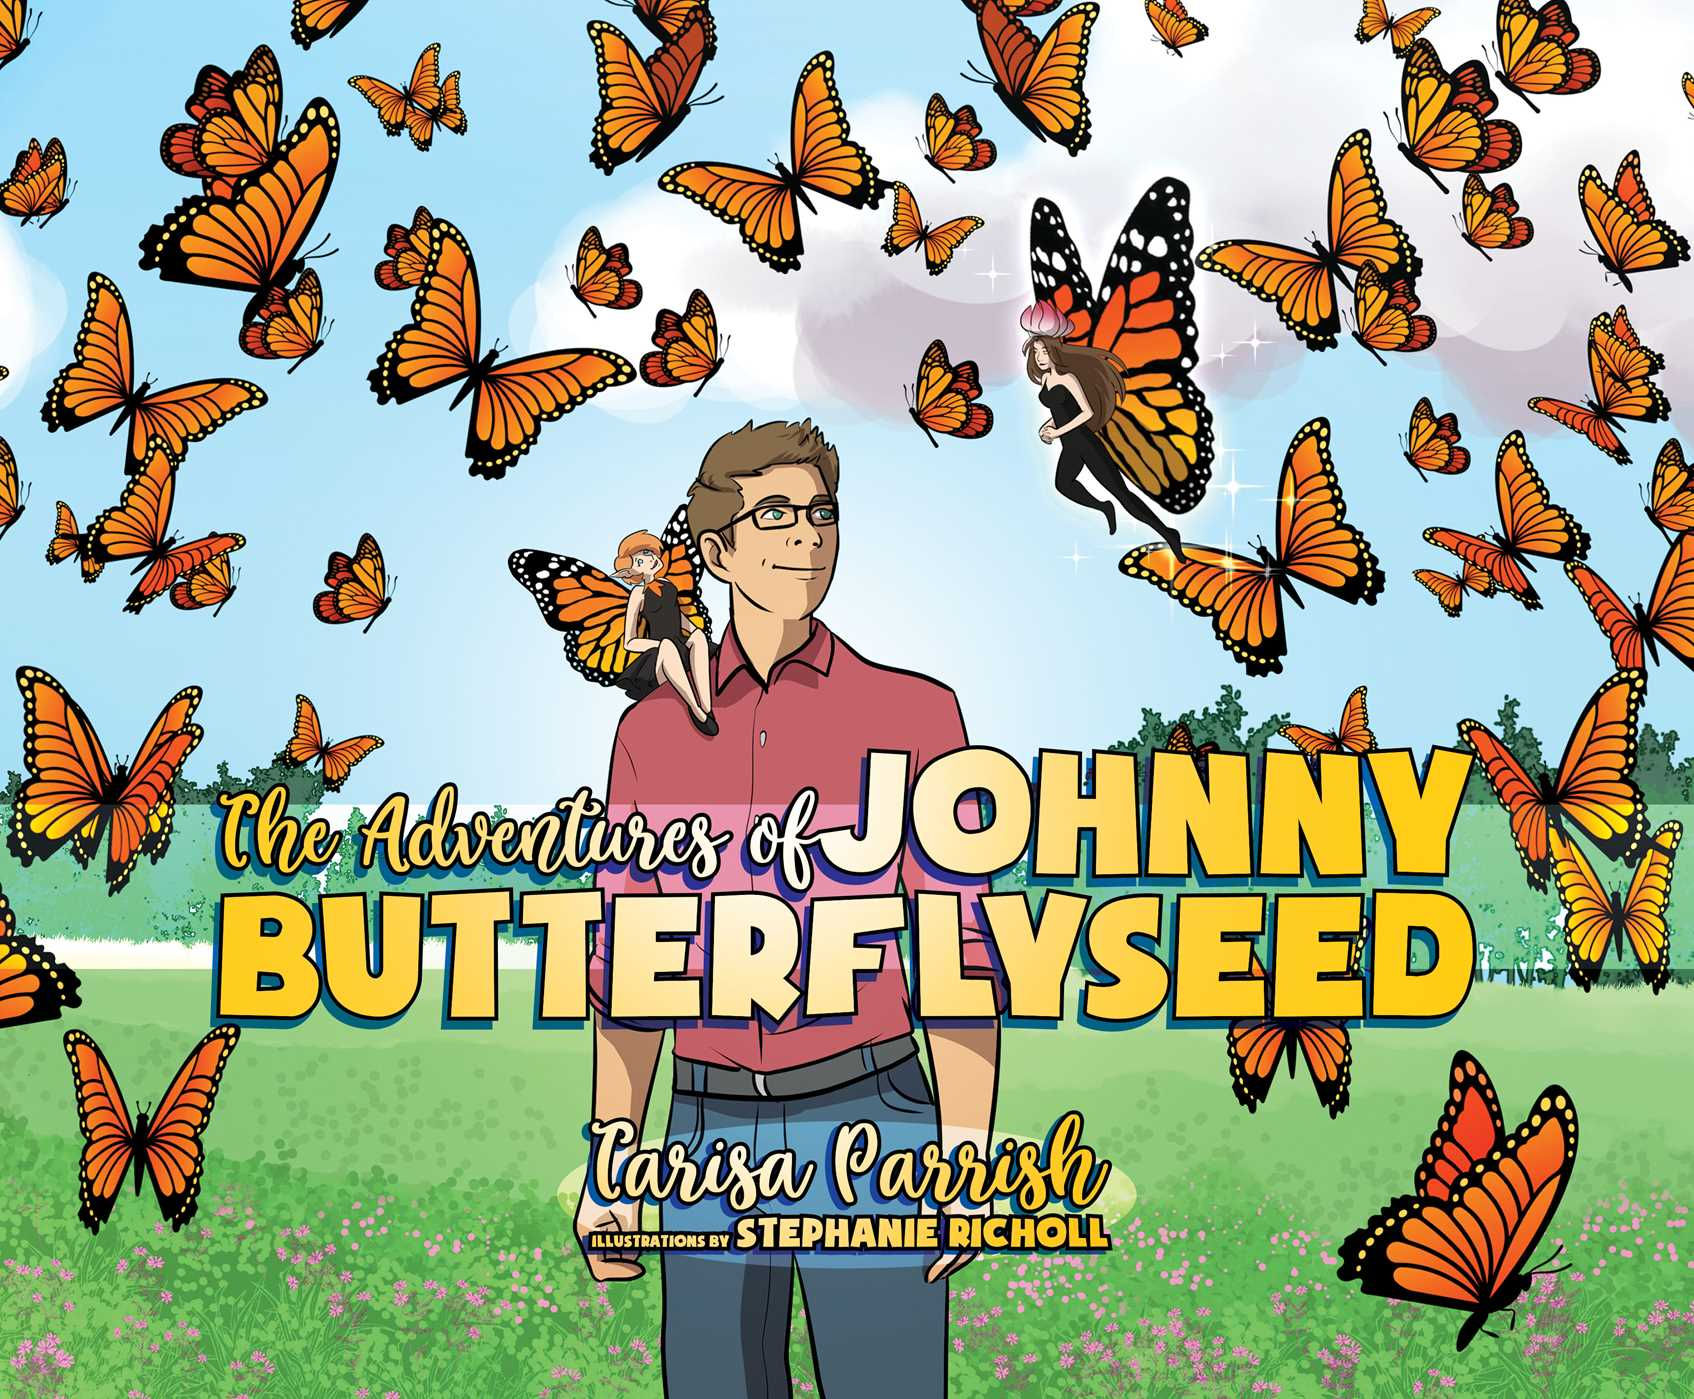 The Adventures of Johnny Butterflyseed